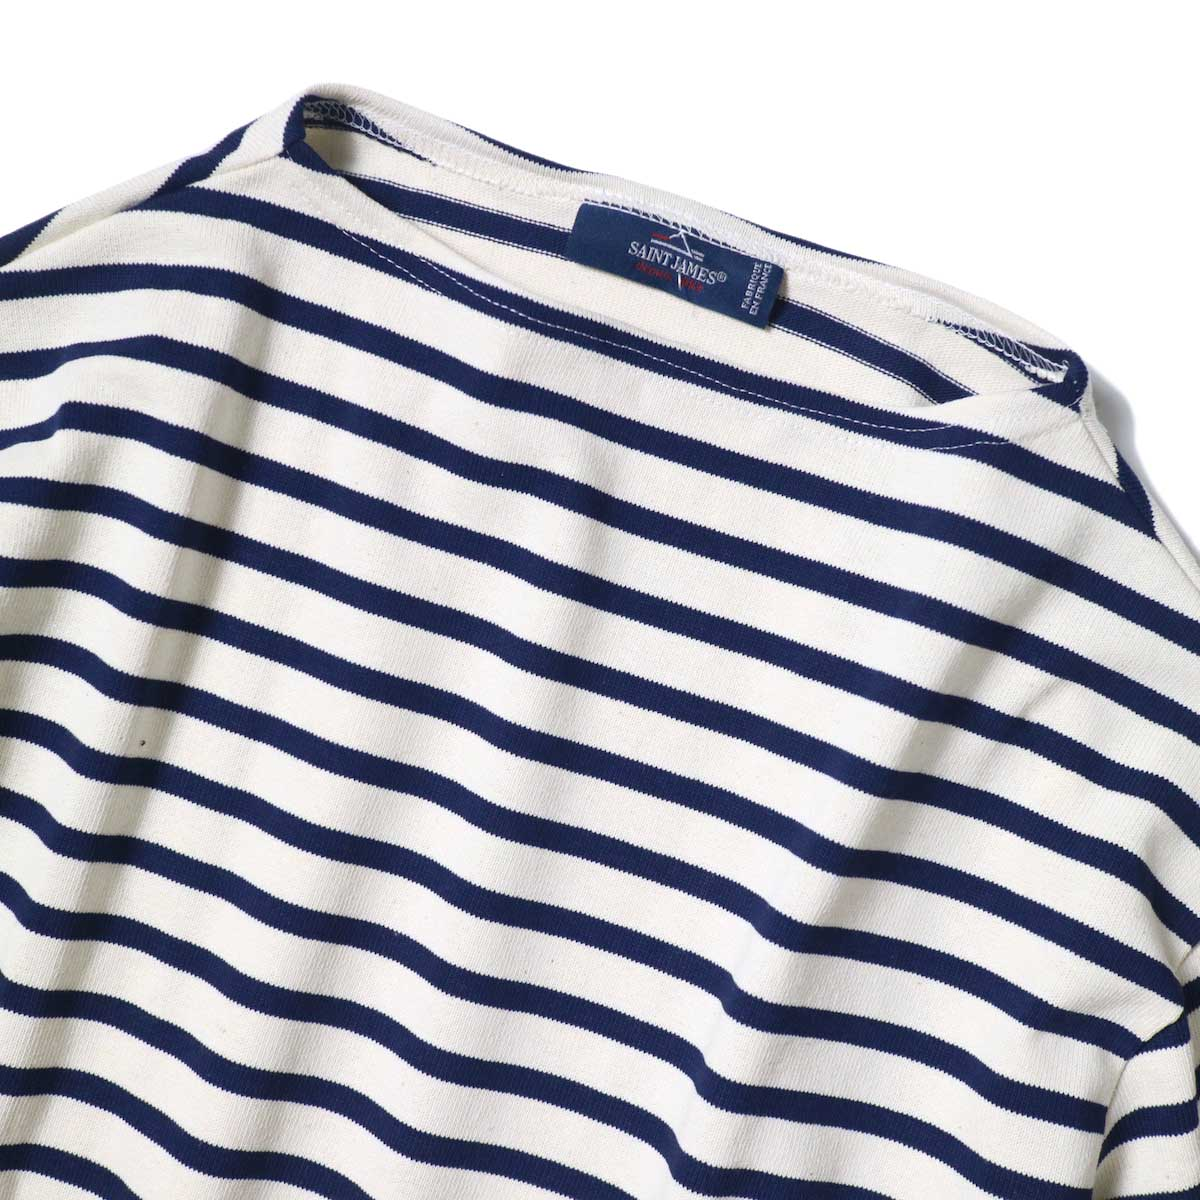 SAINT JAMES / OUESSANT SHORT SLEEVE SHIRTS (Ecru / Marine) ボートネック